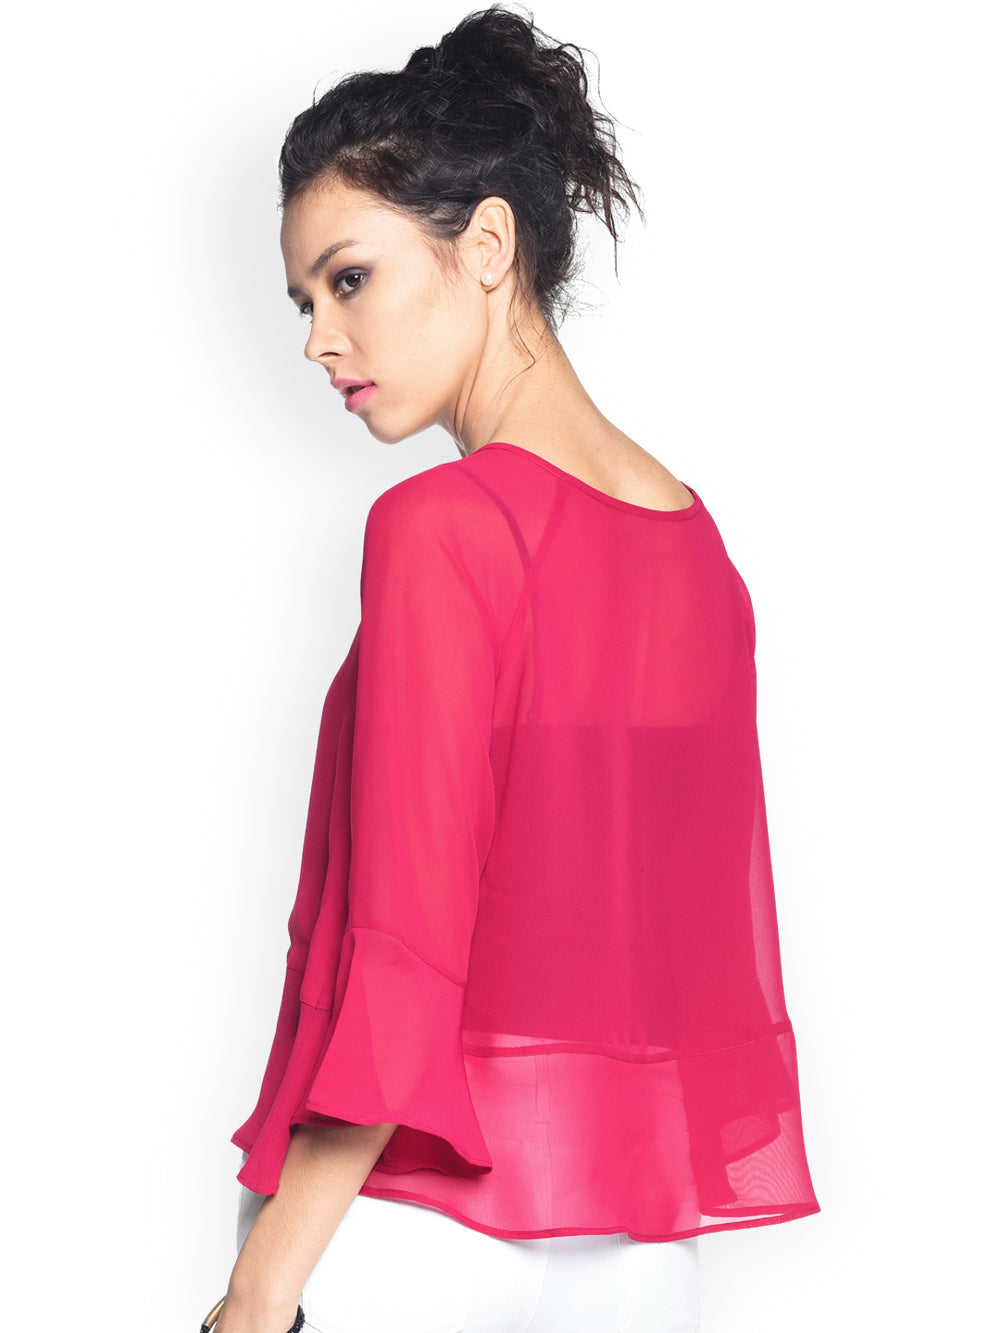 Besiva Pink Sheer Top